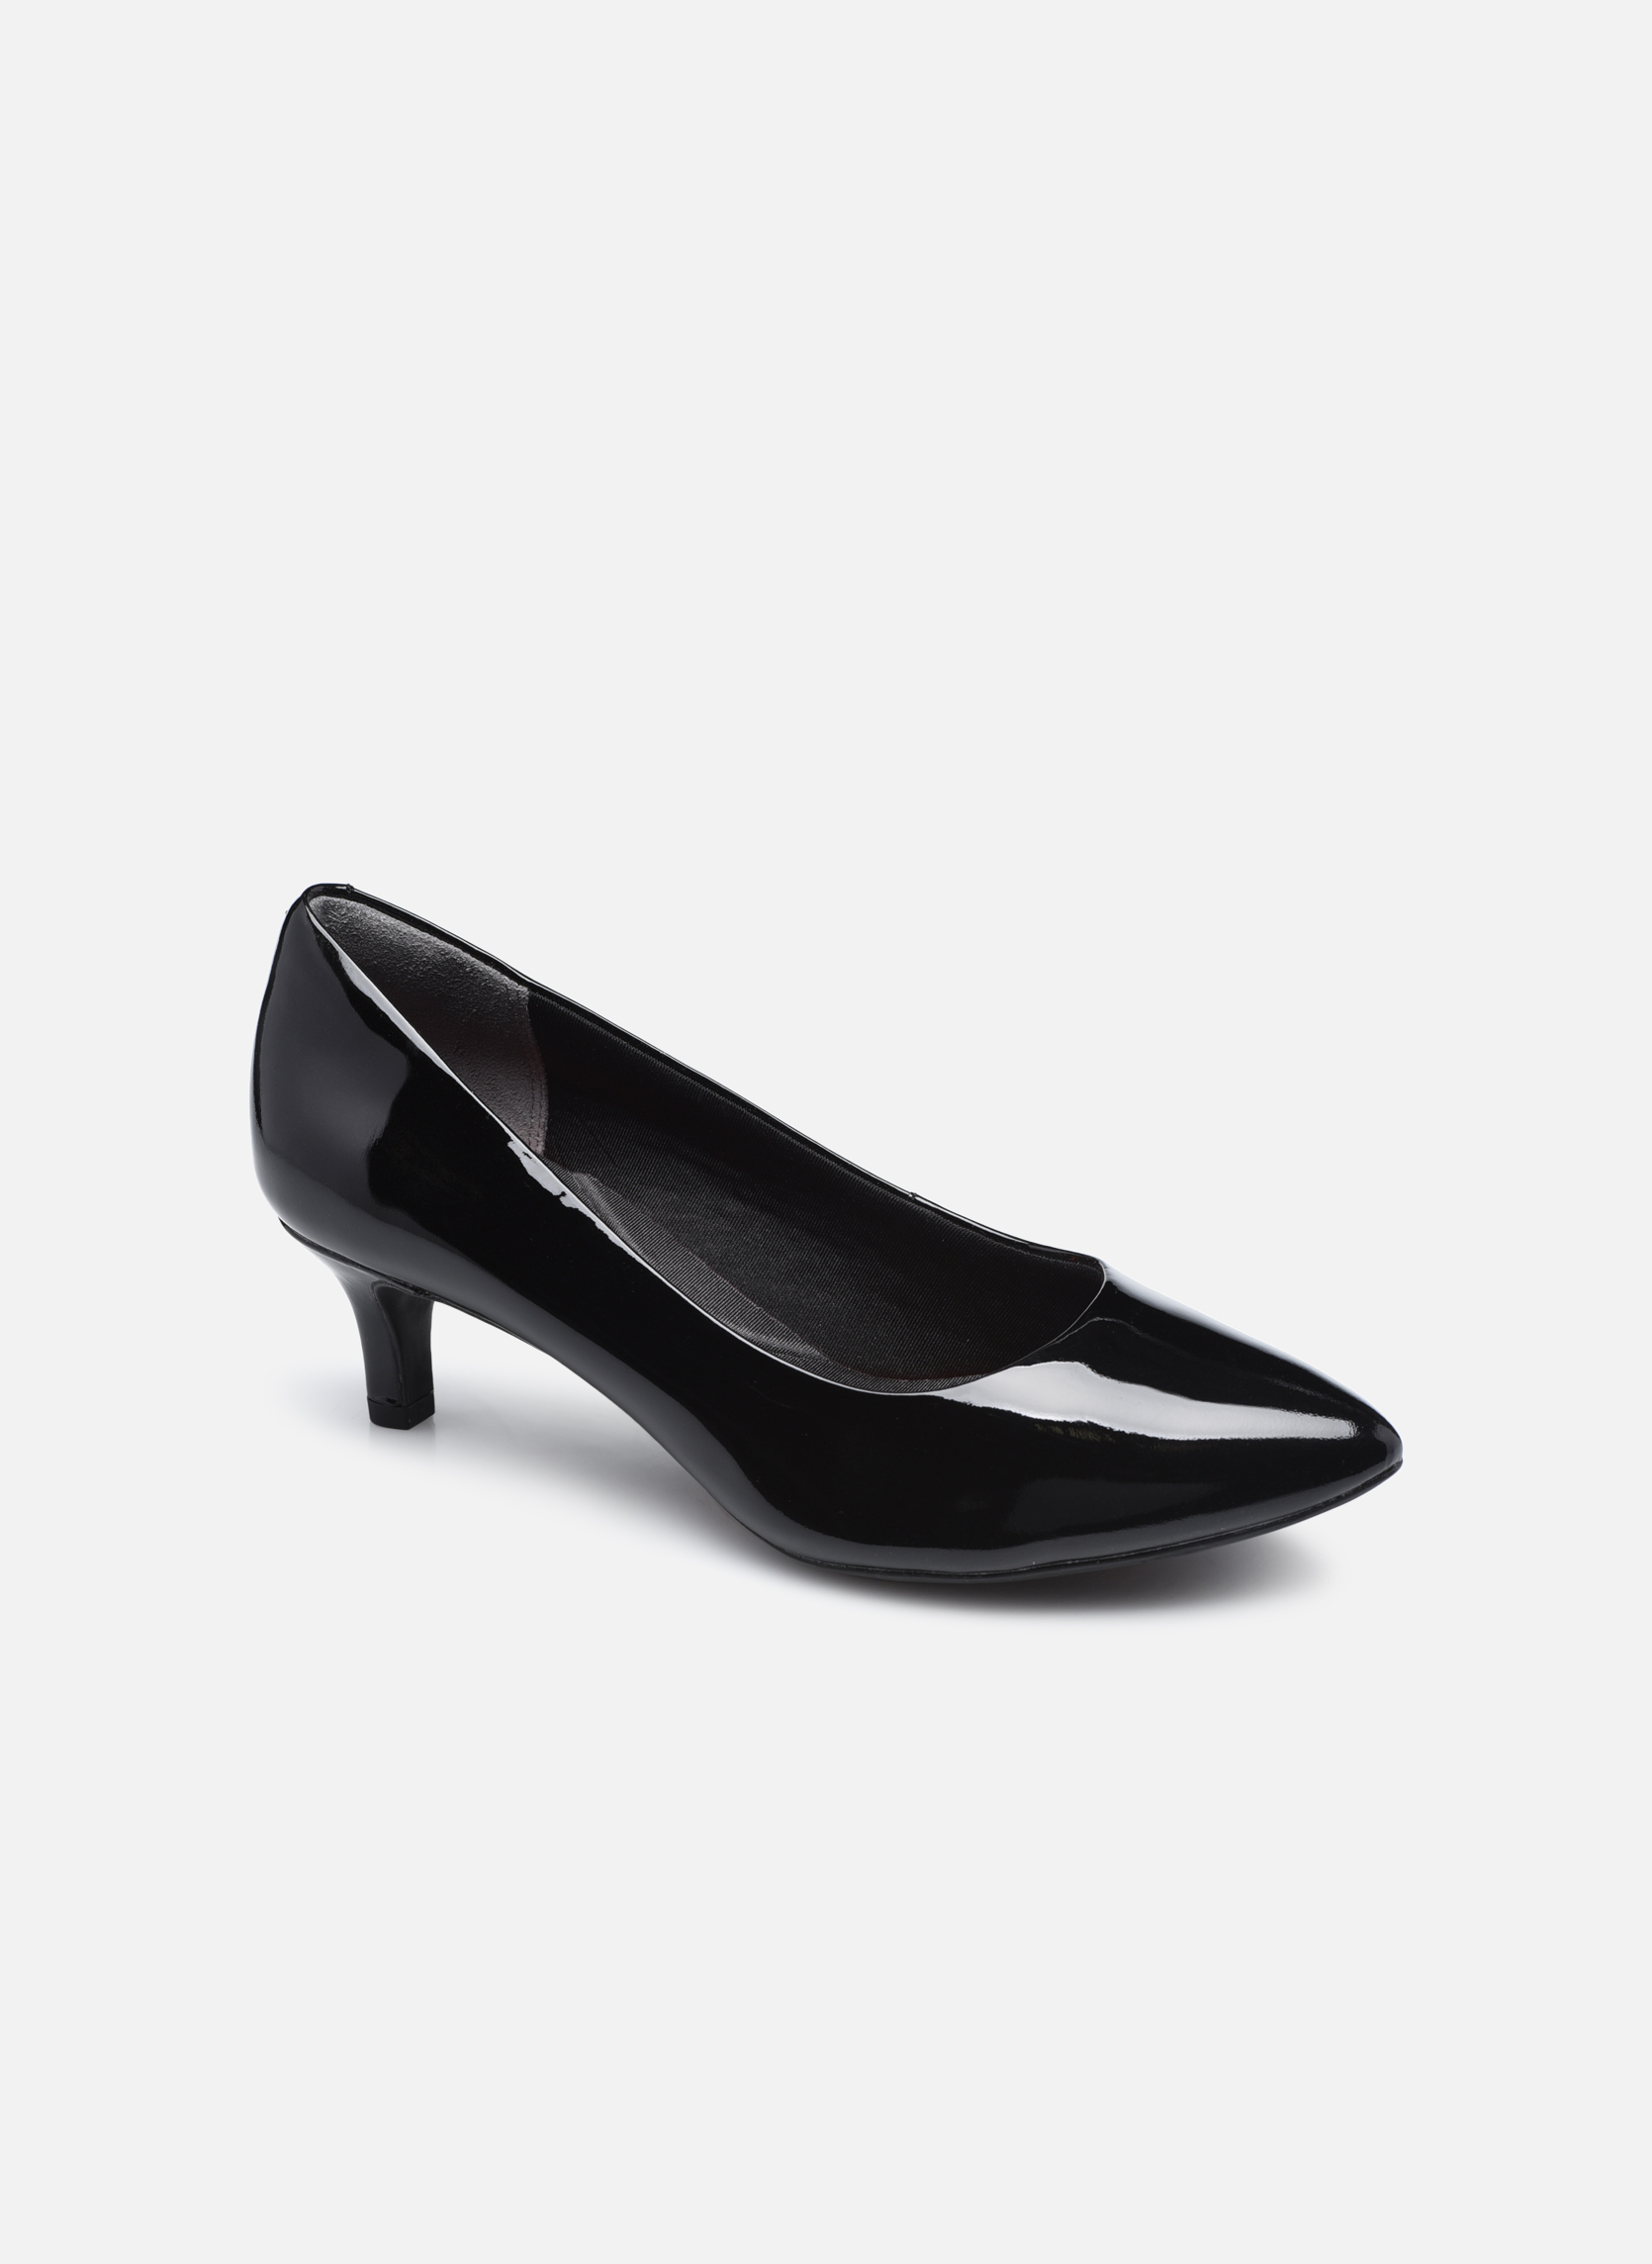 pumps-kalila-pump-by-rockport